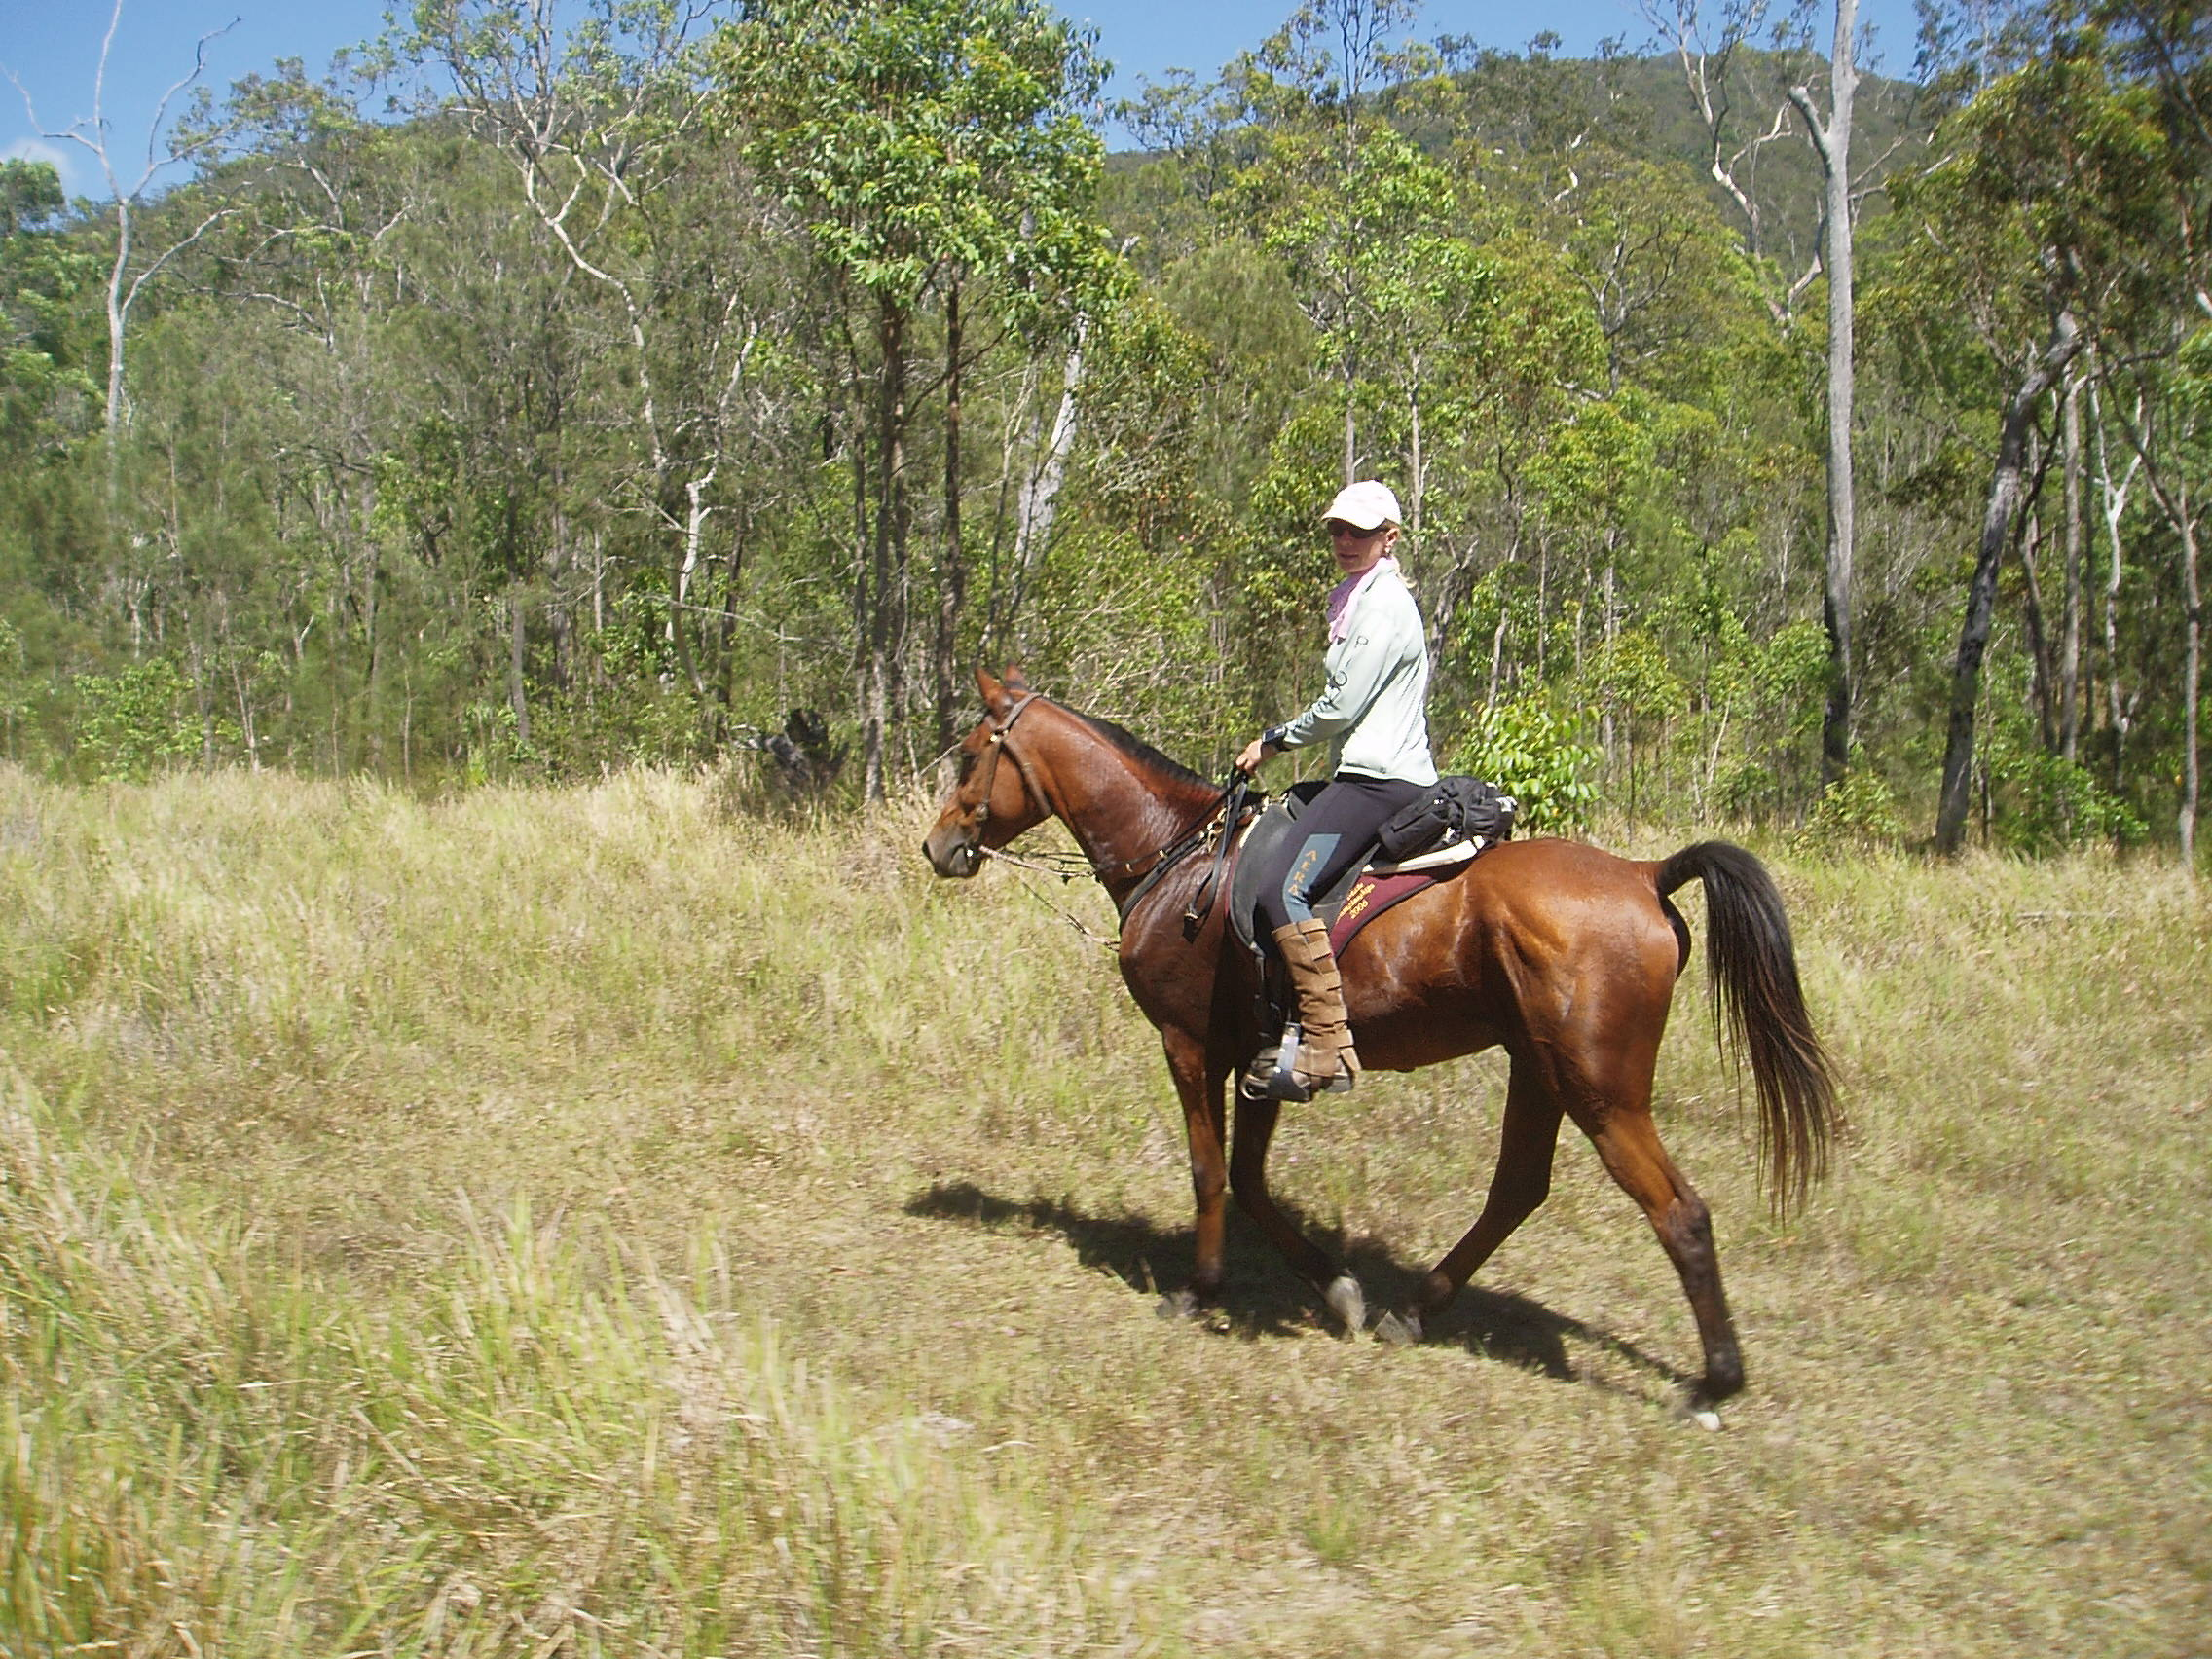 Mellisa Longhurst joined us on her gelding for the challenging Teemburra Dam trailride.